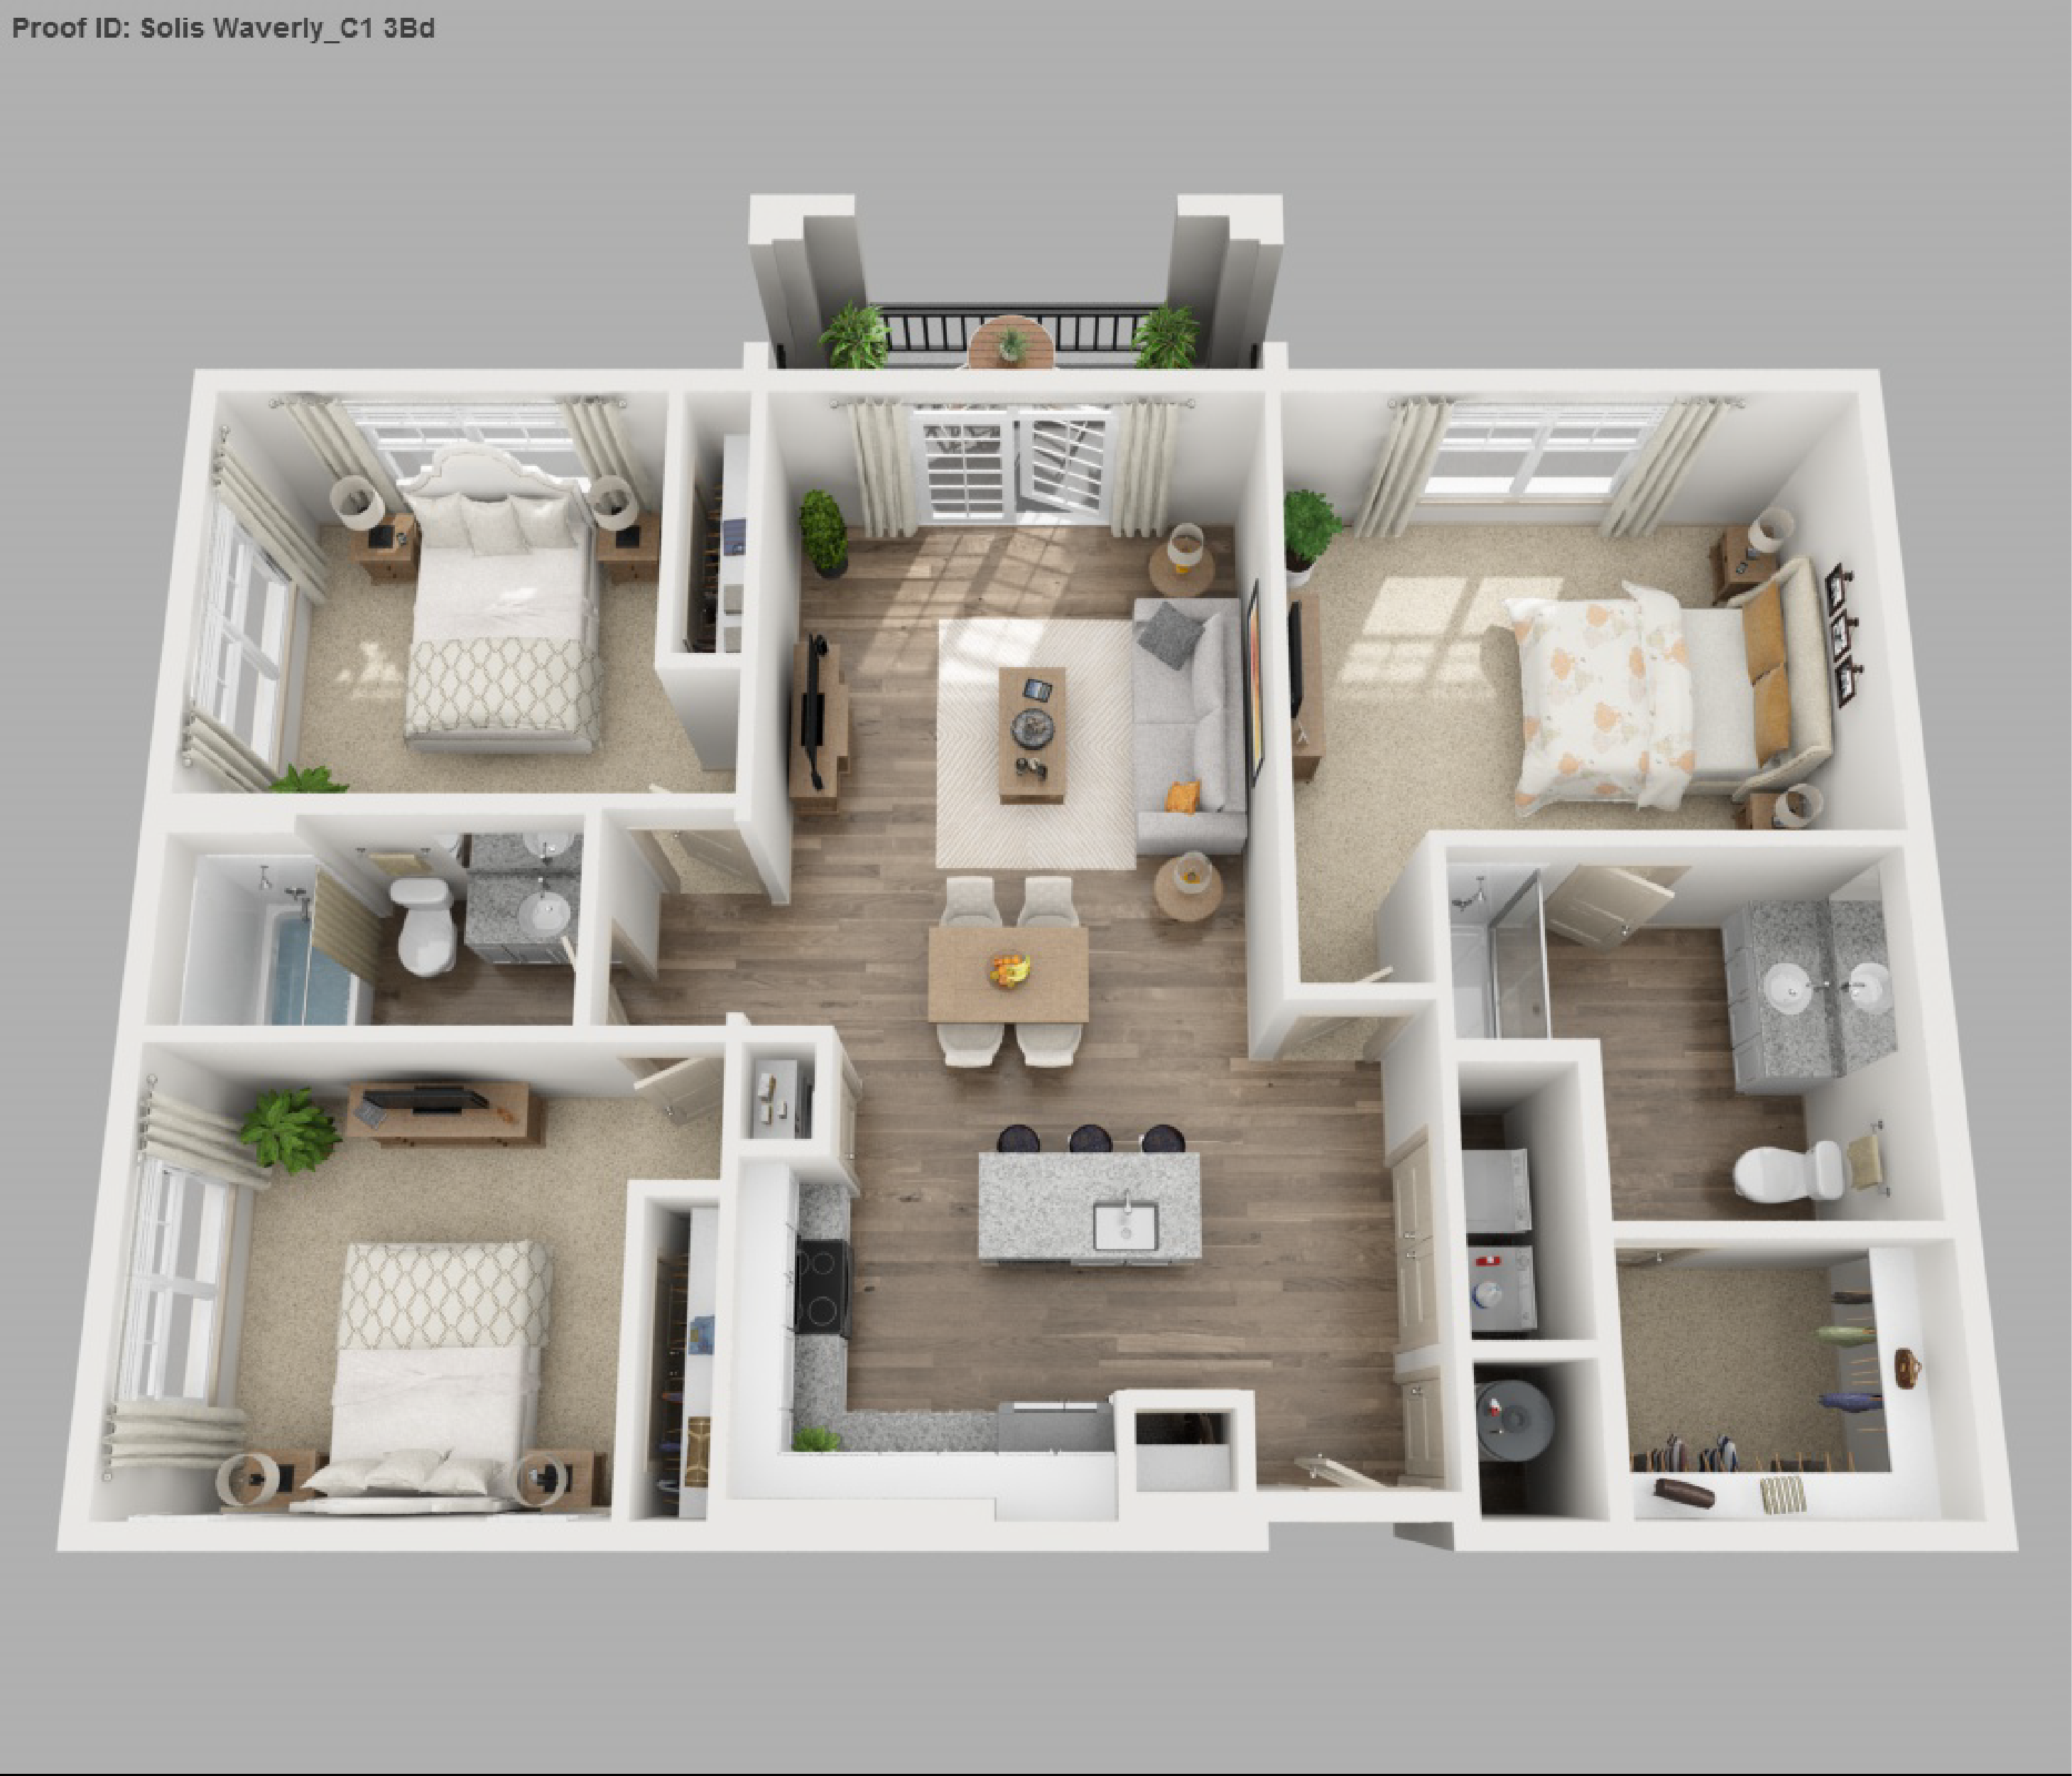 Apartments Floor Plans solis apartments floorplans - waverly